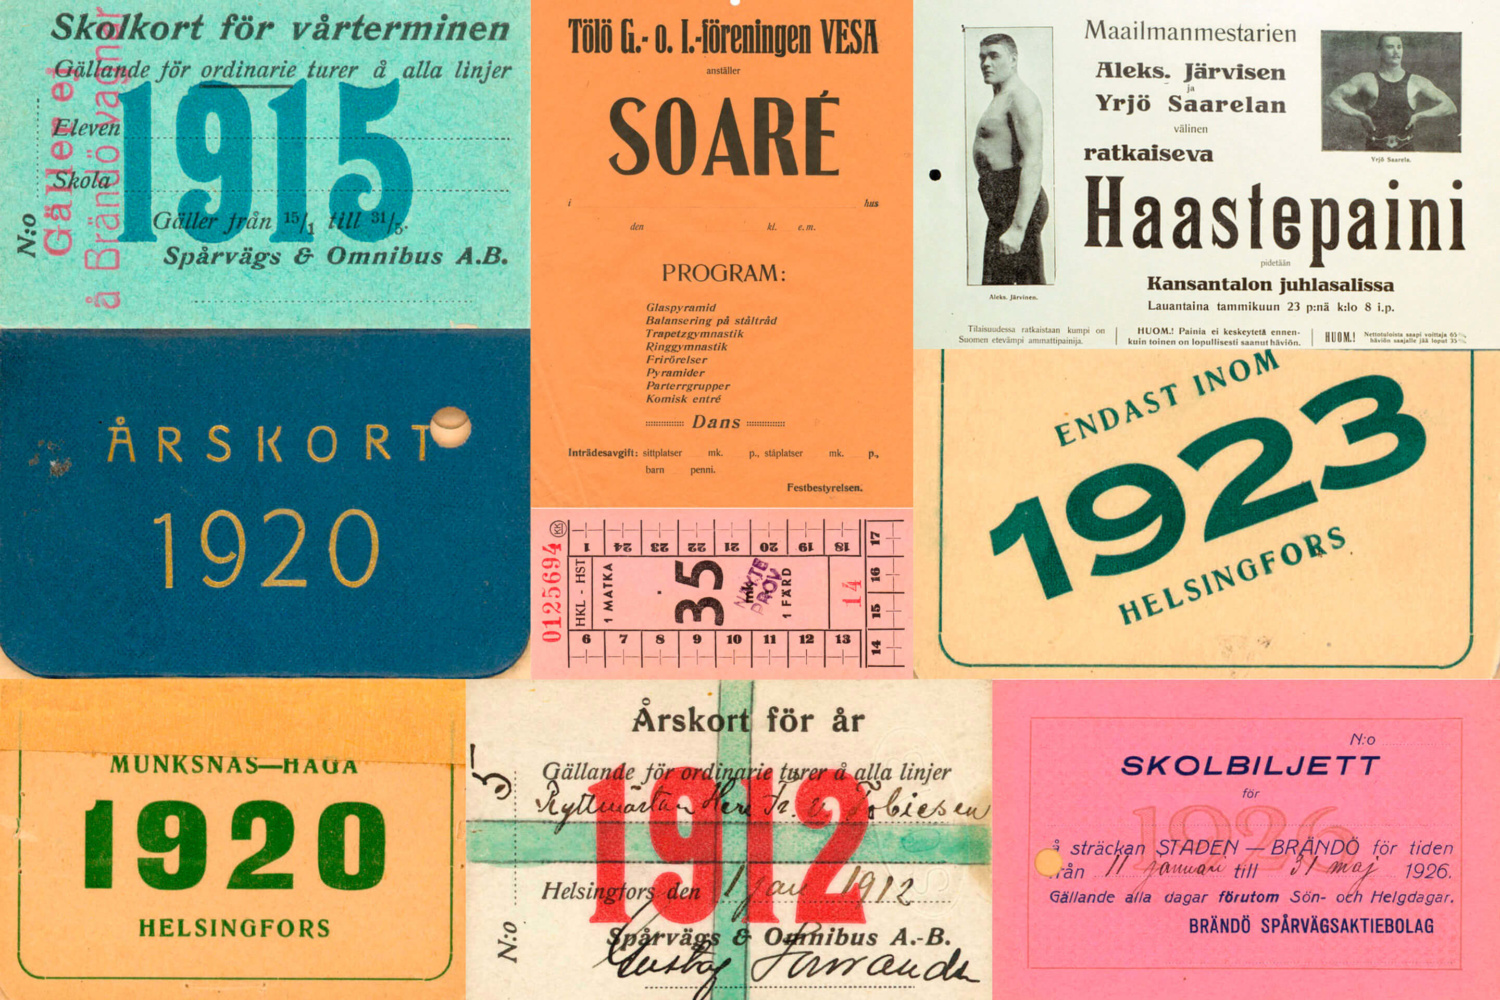 References gathered by Werklig for their brand identity work for Helsinki City Museum